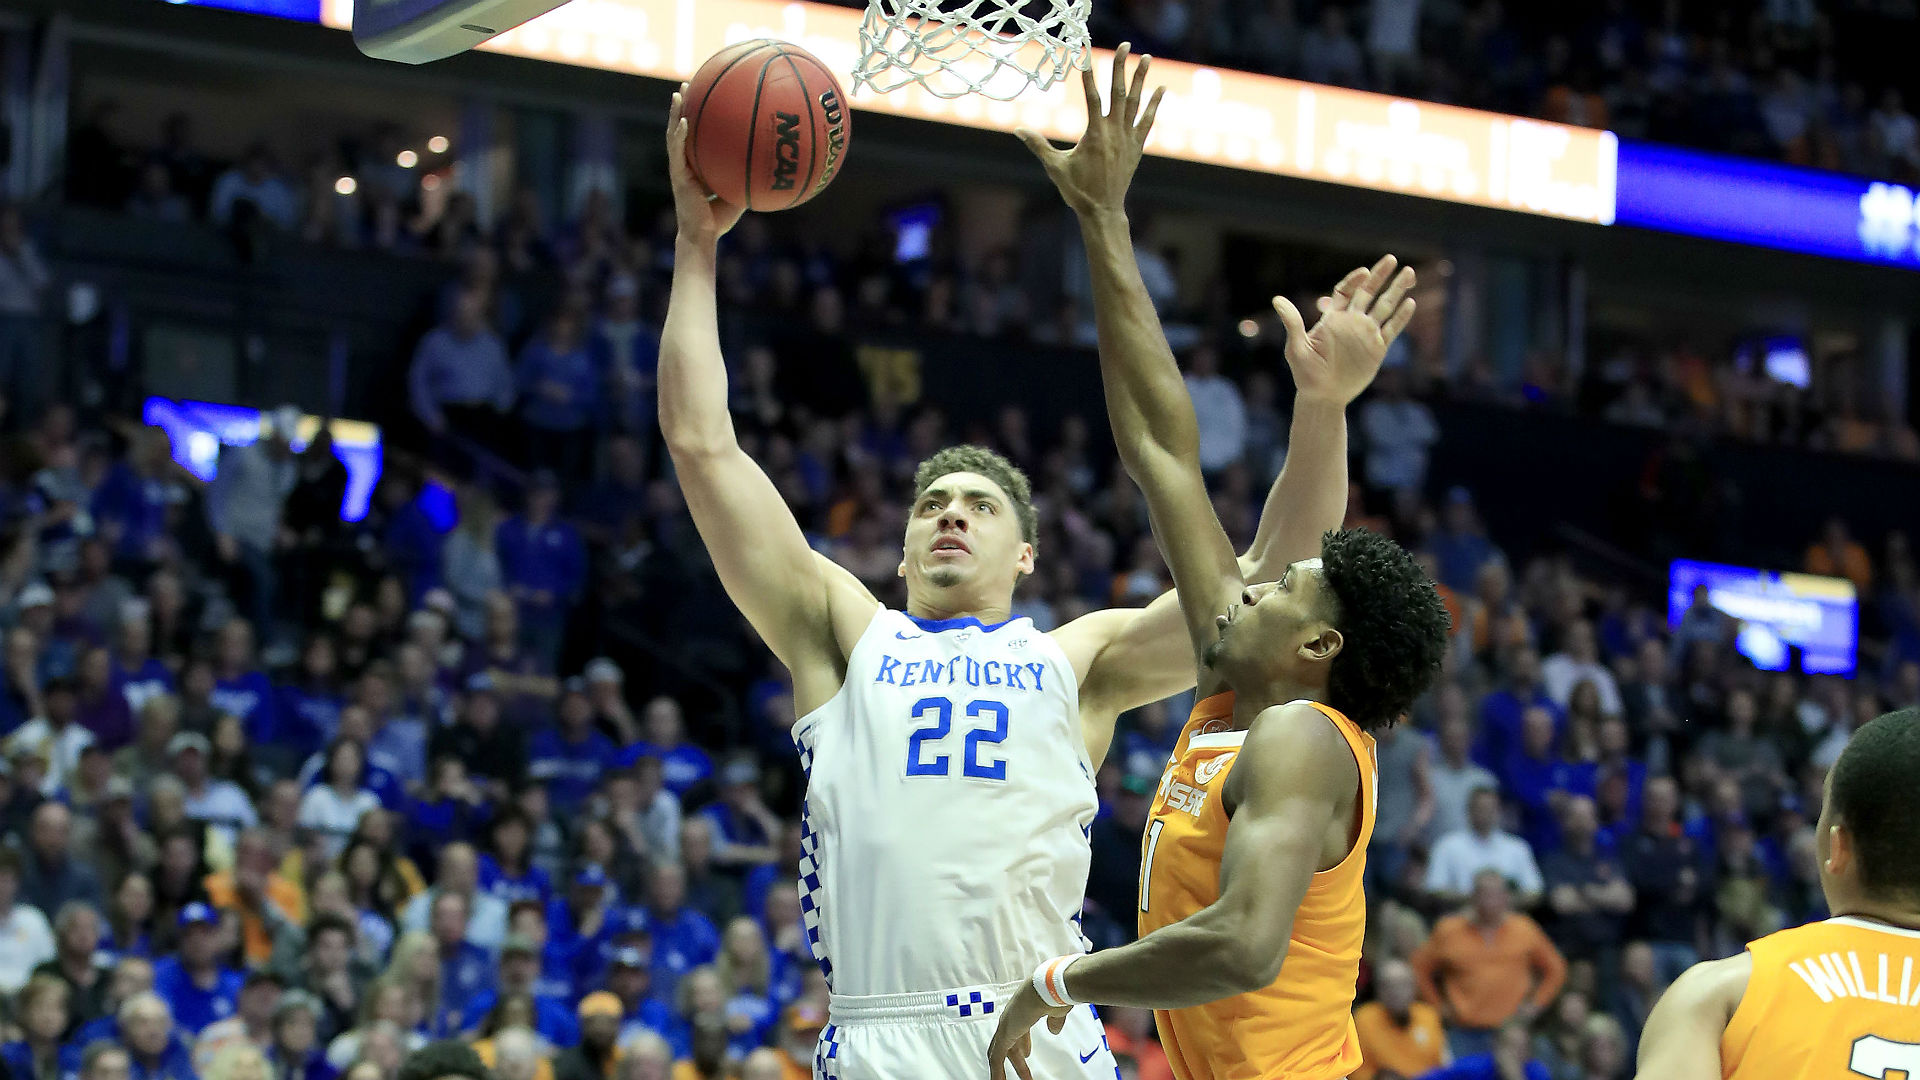 March Madness 2019 3 Takeaways From Duke S Win Over: 3 Takeaways From Tennessee's Win Over Kentucky